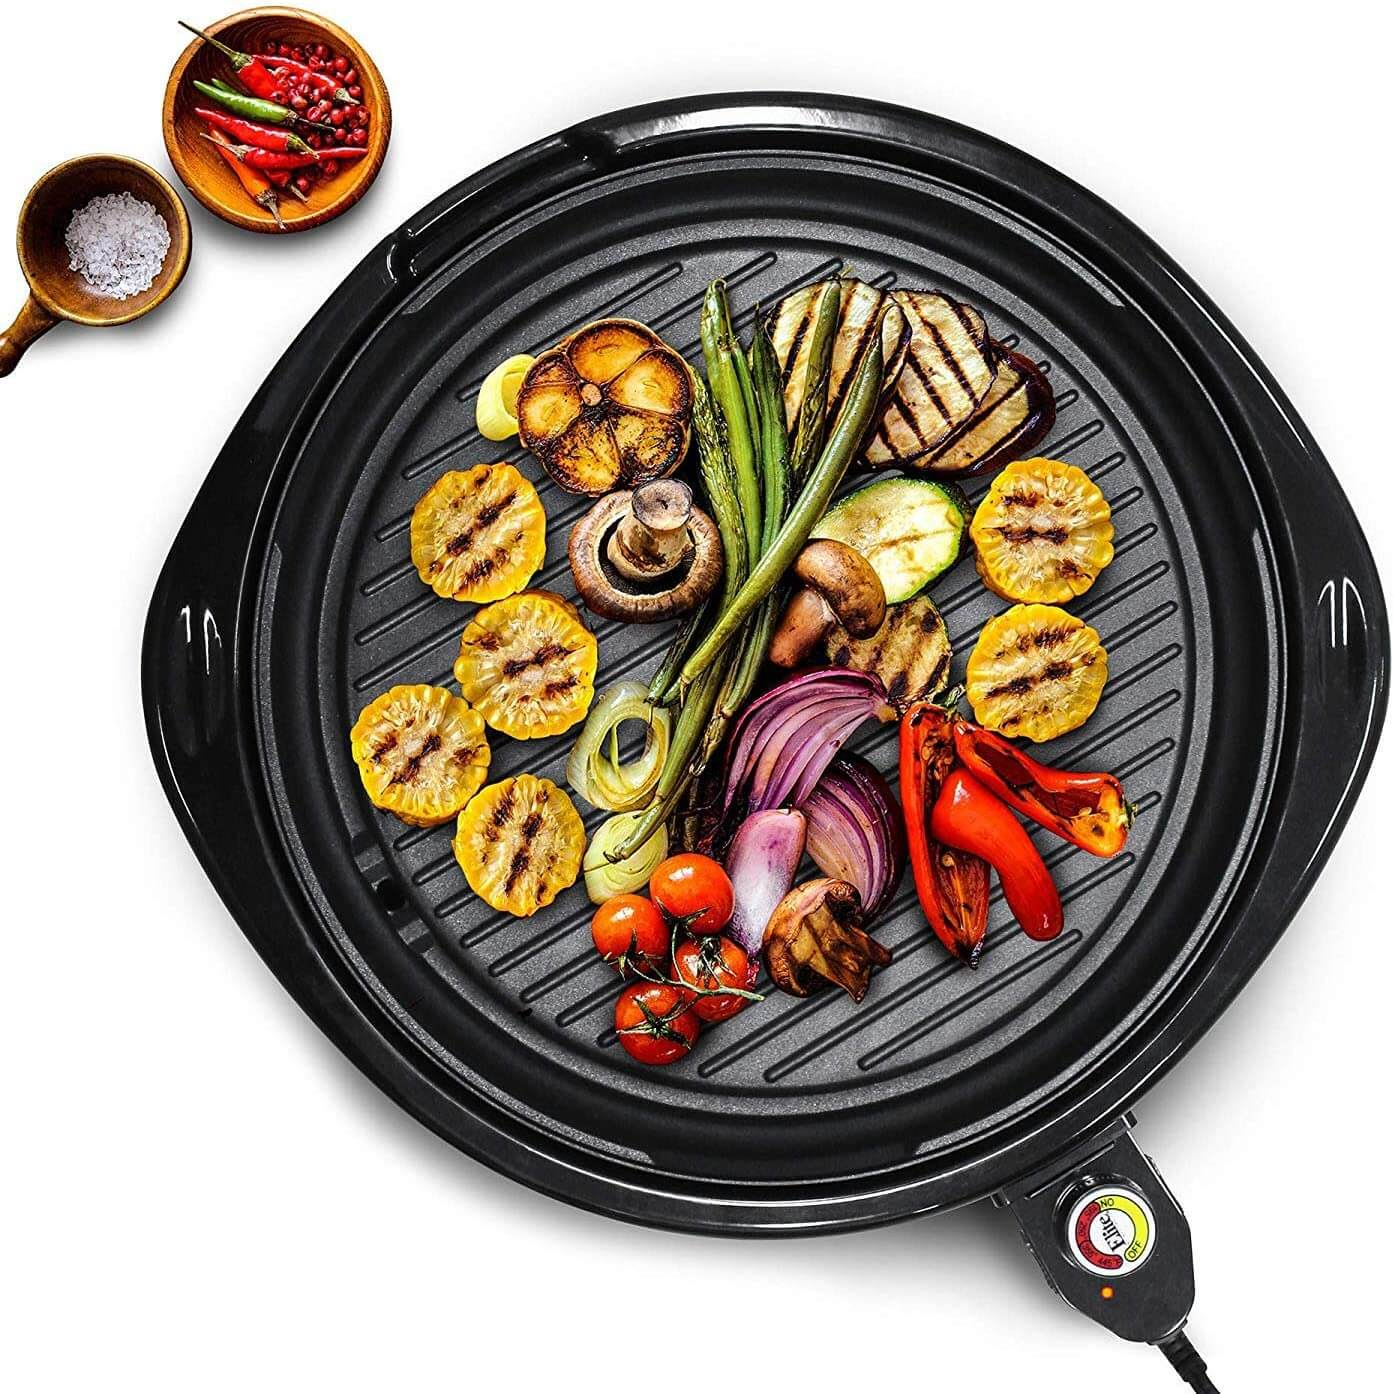 roasting veggies on electric grill as a way to make healthy food taste good